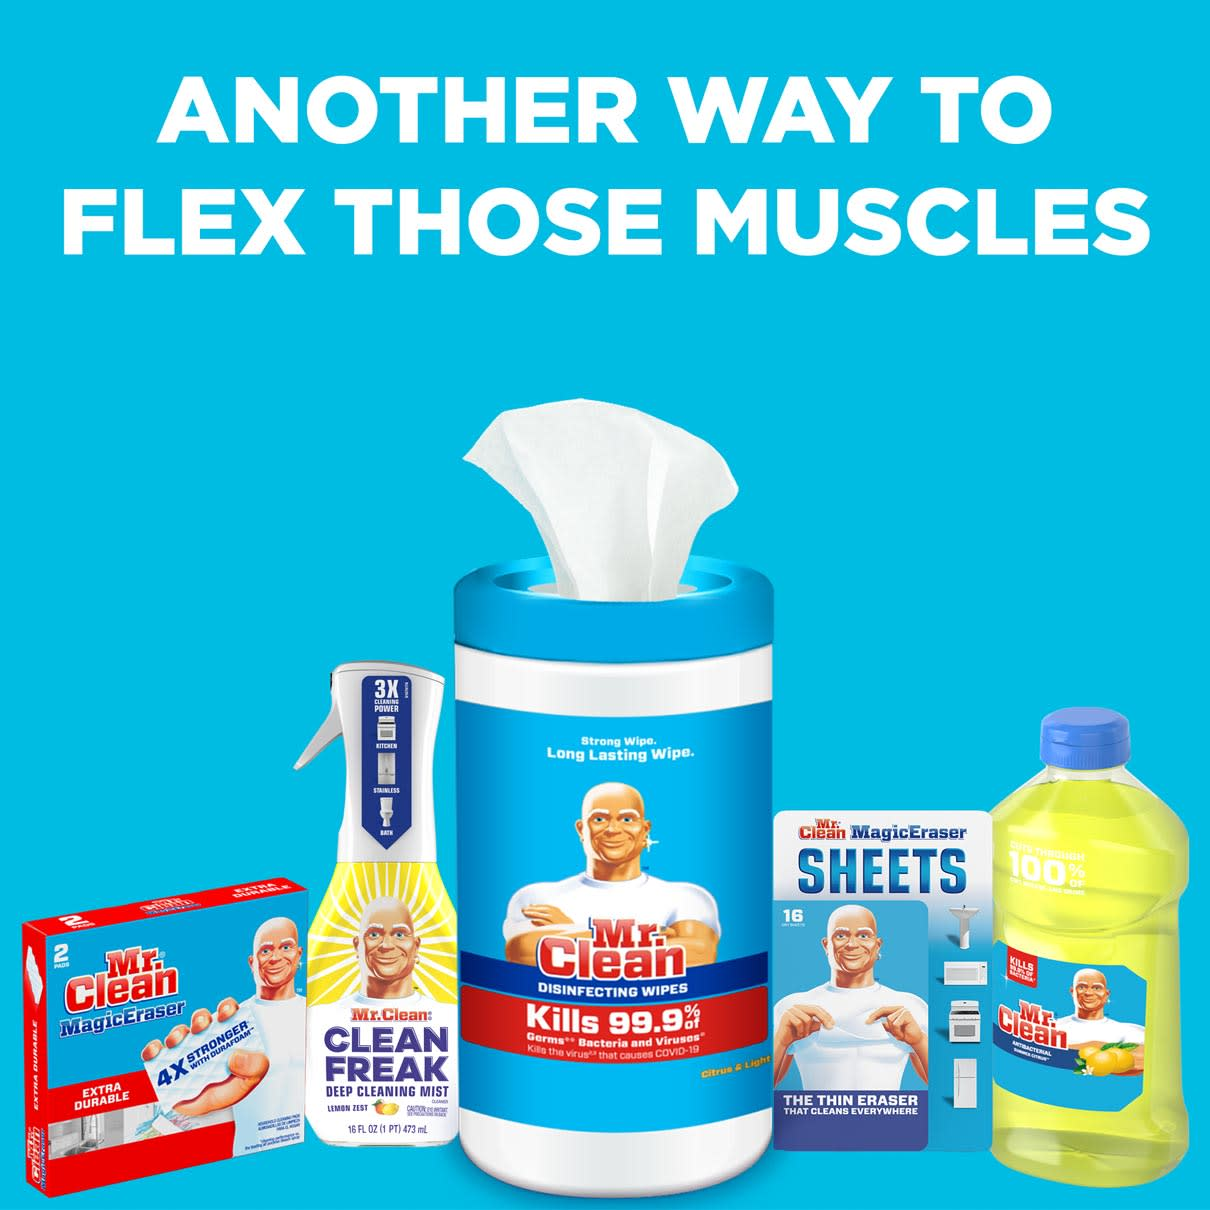 Mr. Clean - Another way to flex those muscles